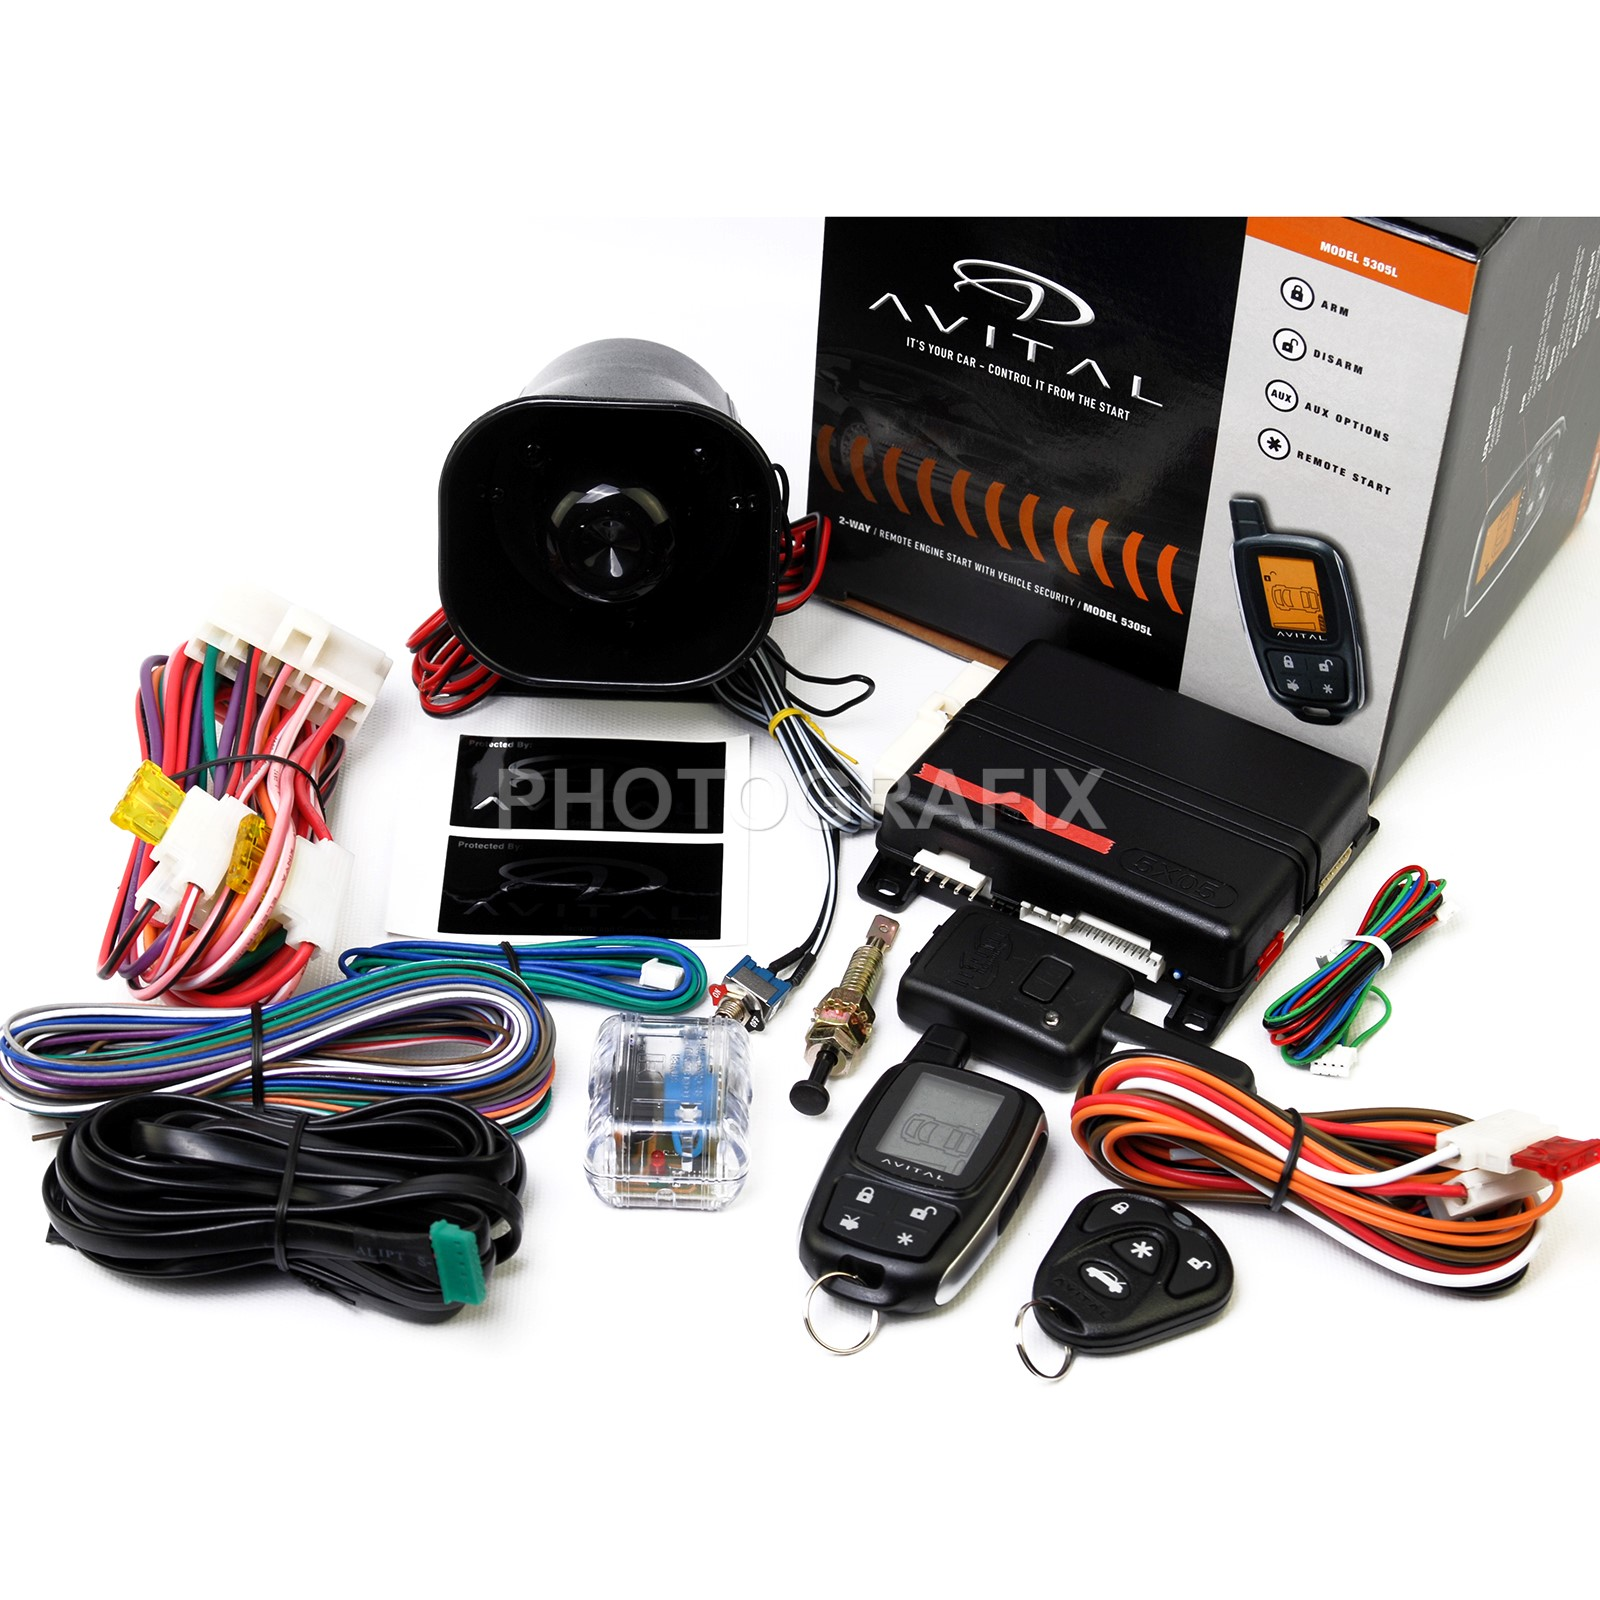 dei5305l__itemimageurl1 avital 5305l 2 way remote auto car start starter & alarm security avital 5305l wiring diagram at virtualis.co